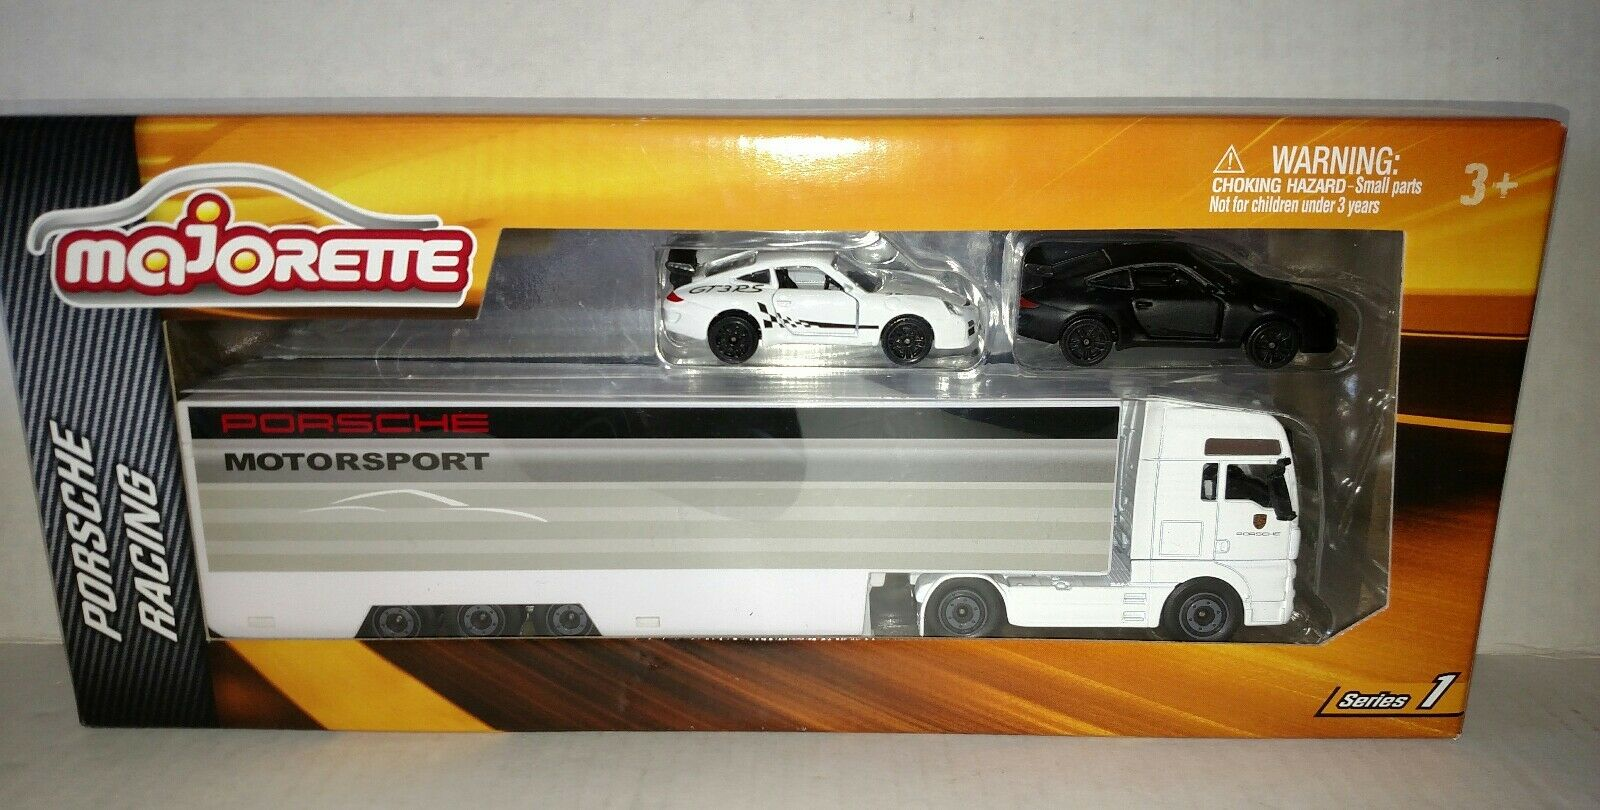 Majorette 1 59 Porsche 911 GT3 RS Team Racing Transporter Trailer 2 die-cast car